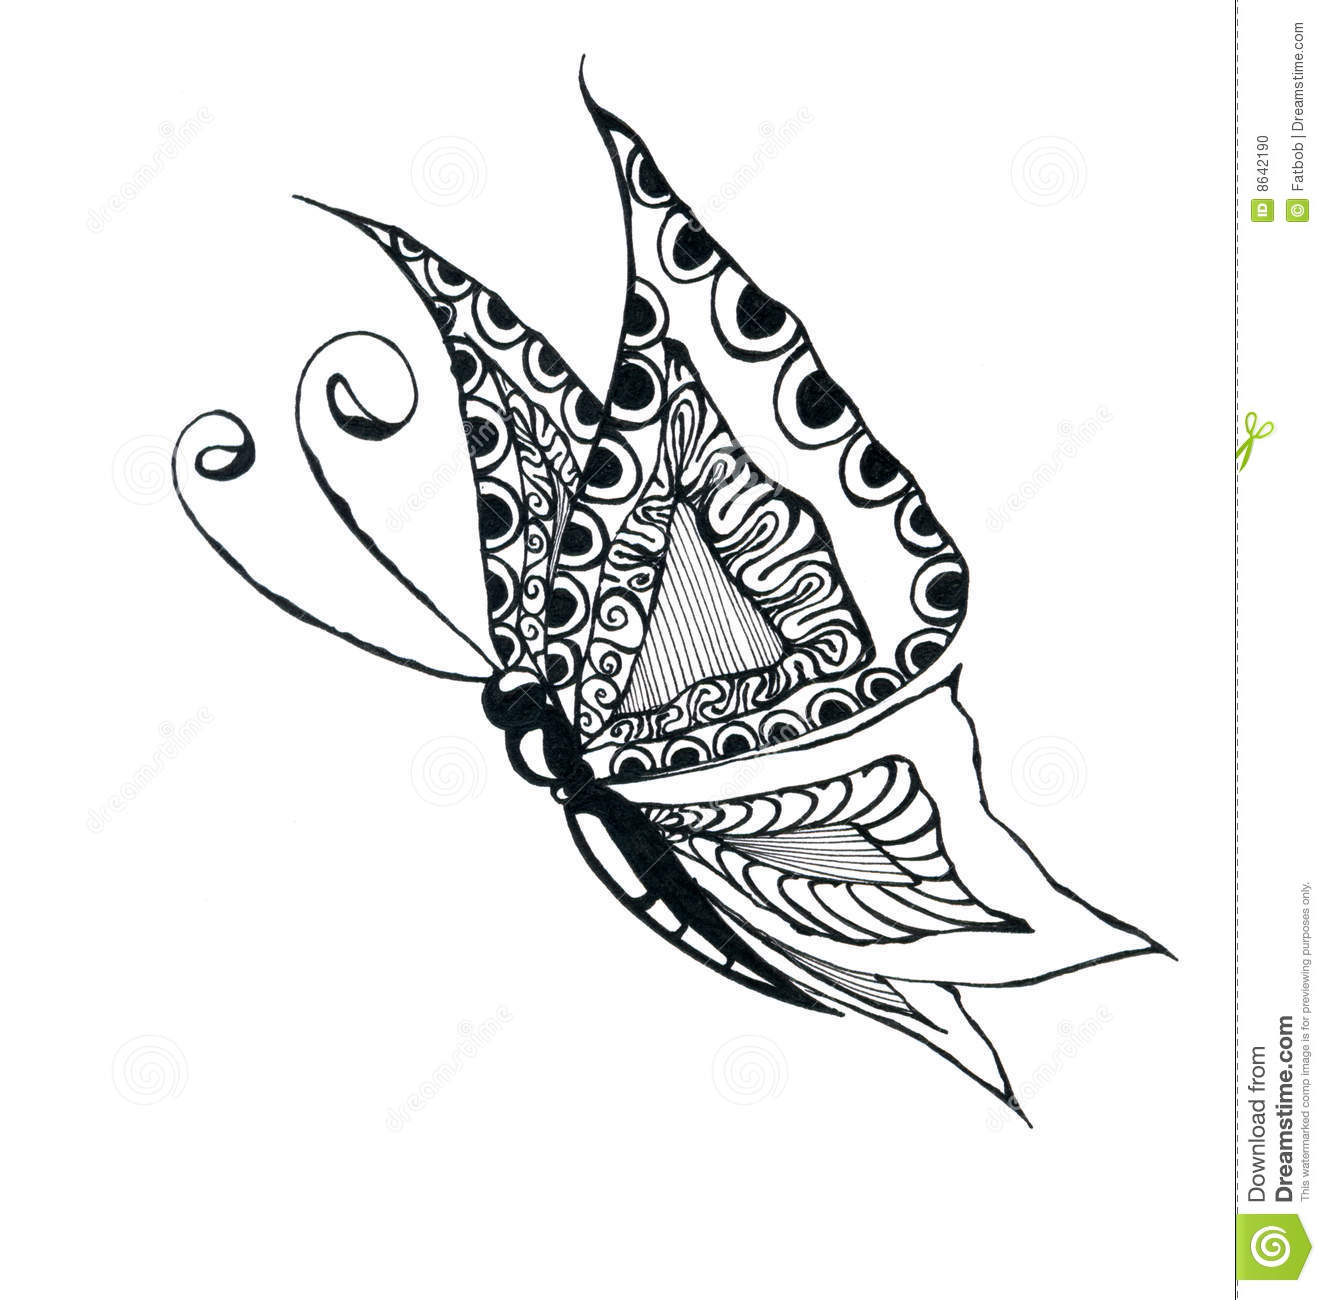 Butterfly drawing stock illustration. Illustration of ...